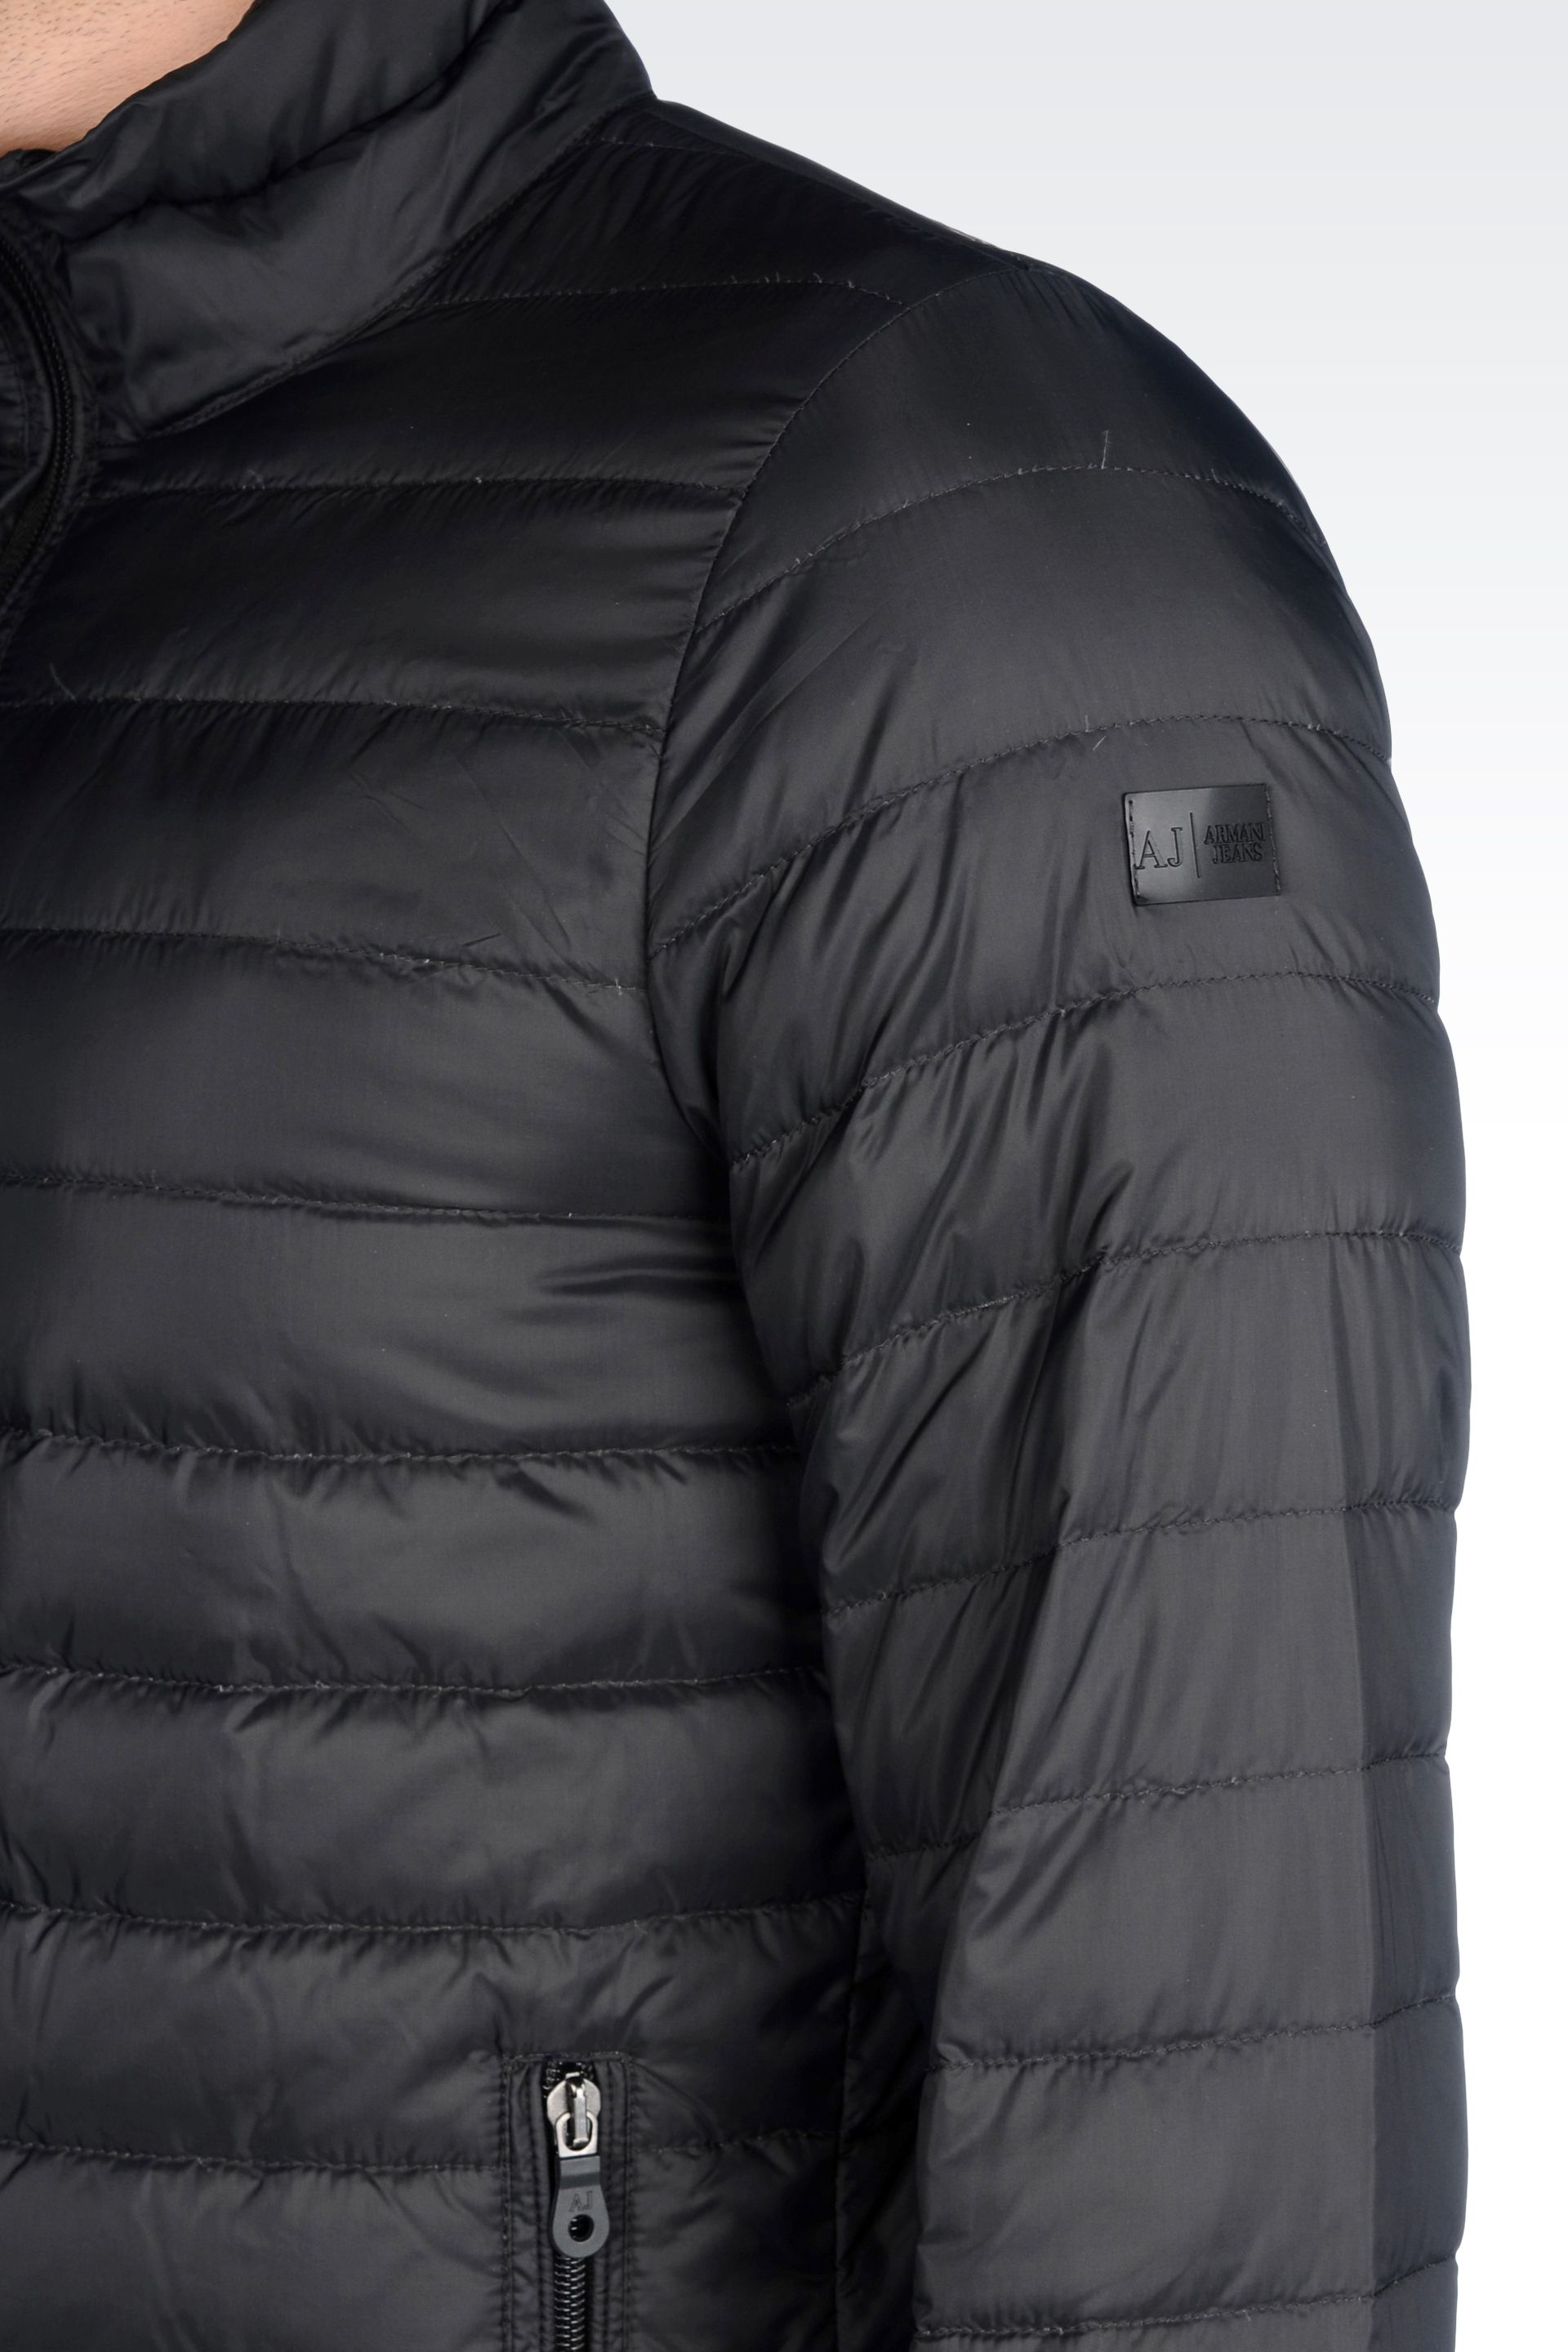 57eaa8247a1f Lyst - Armani Jeans Ultra Light Down Jacket with Special Packaging ...